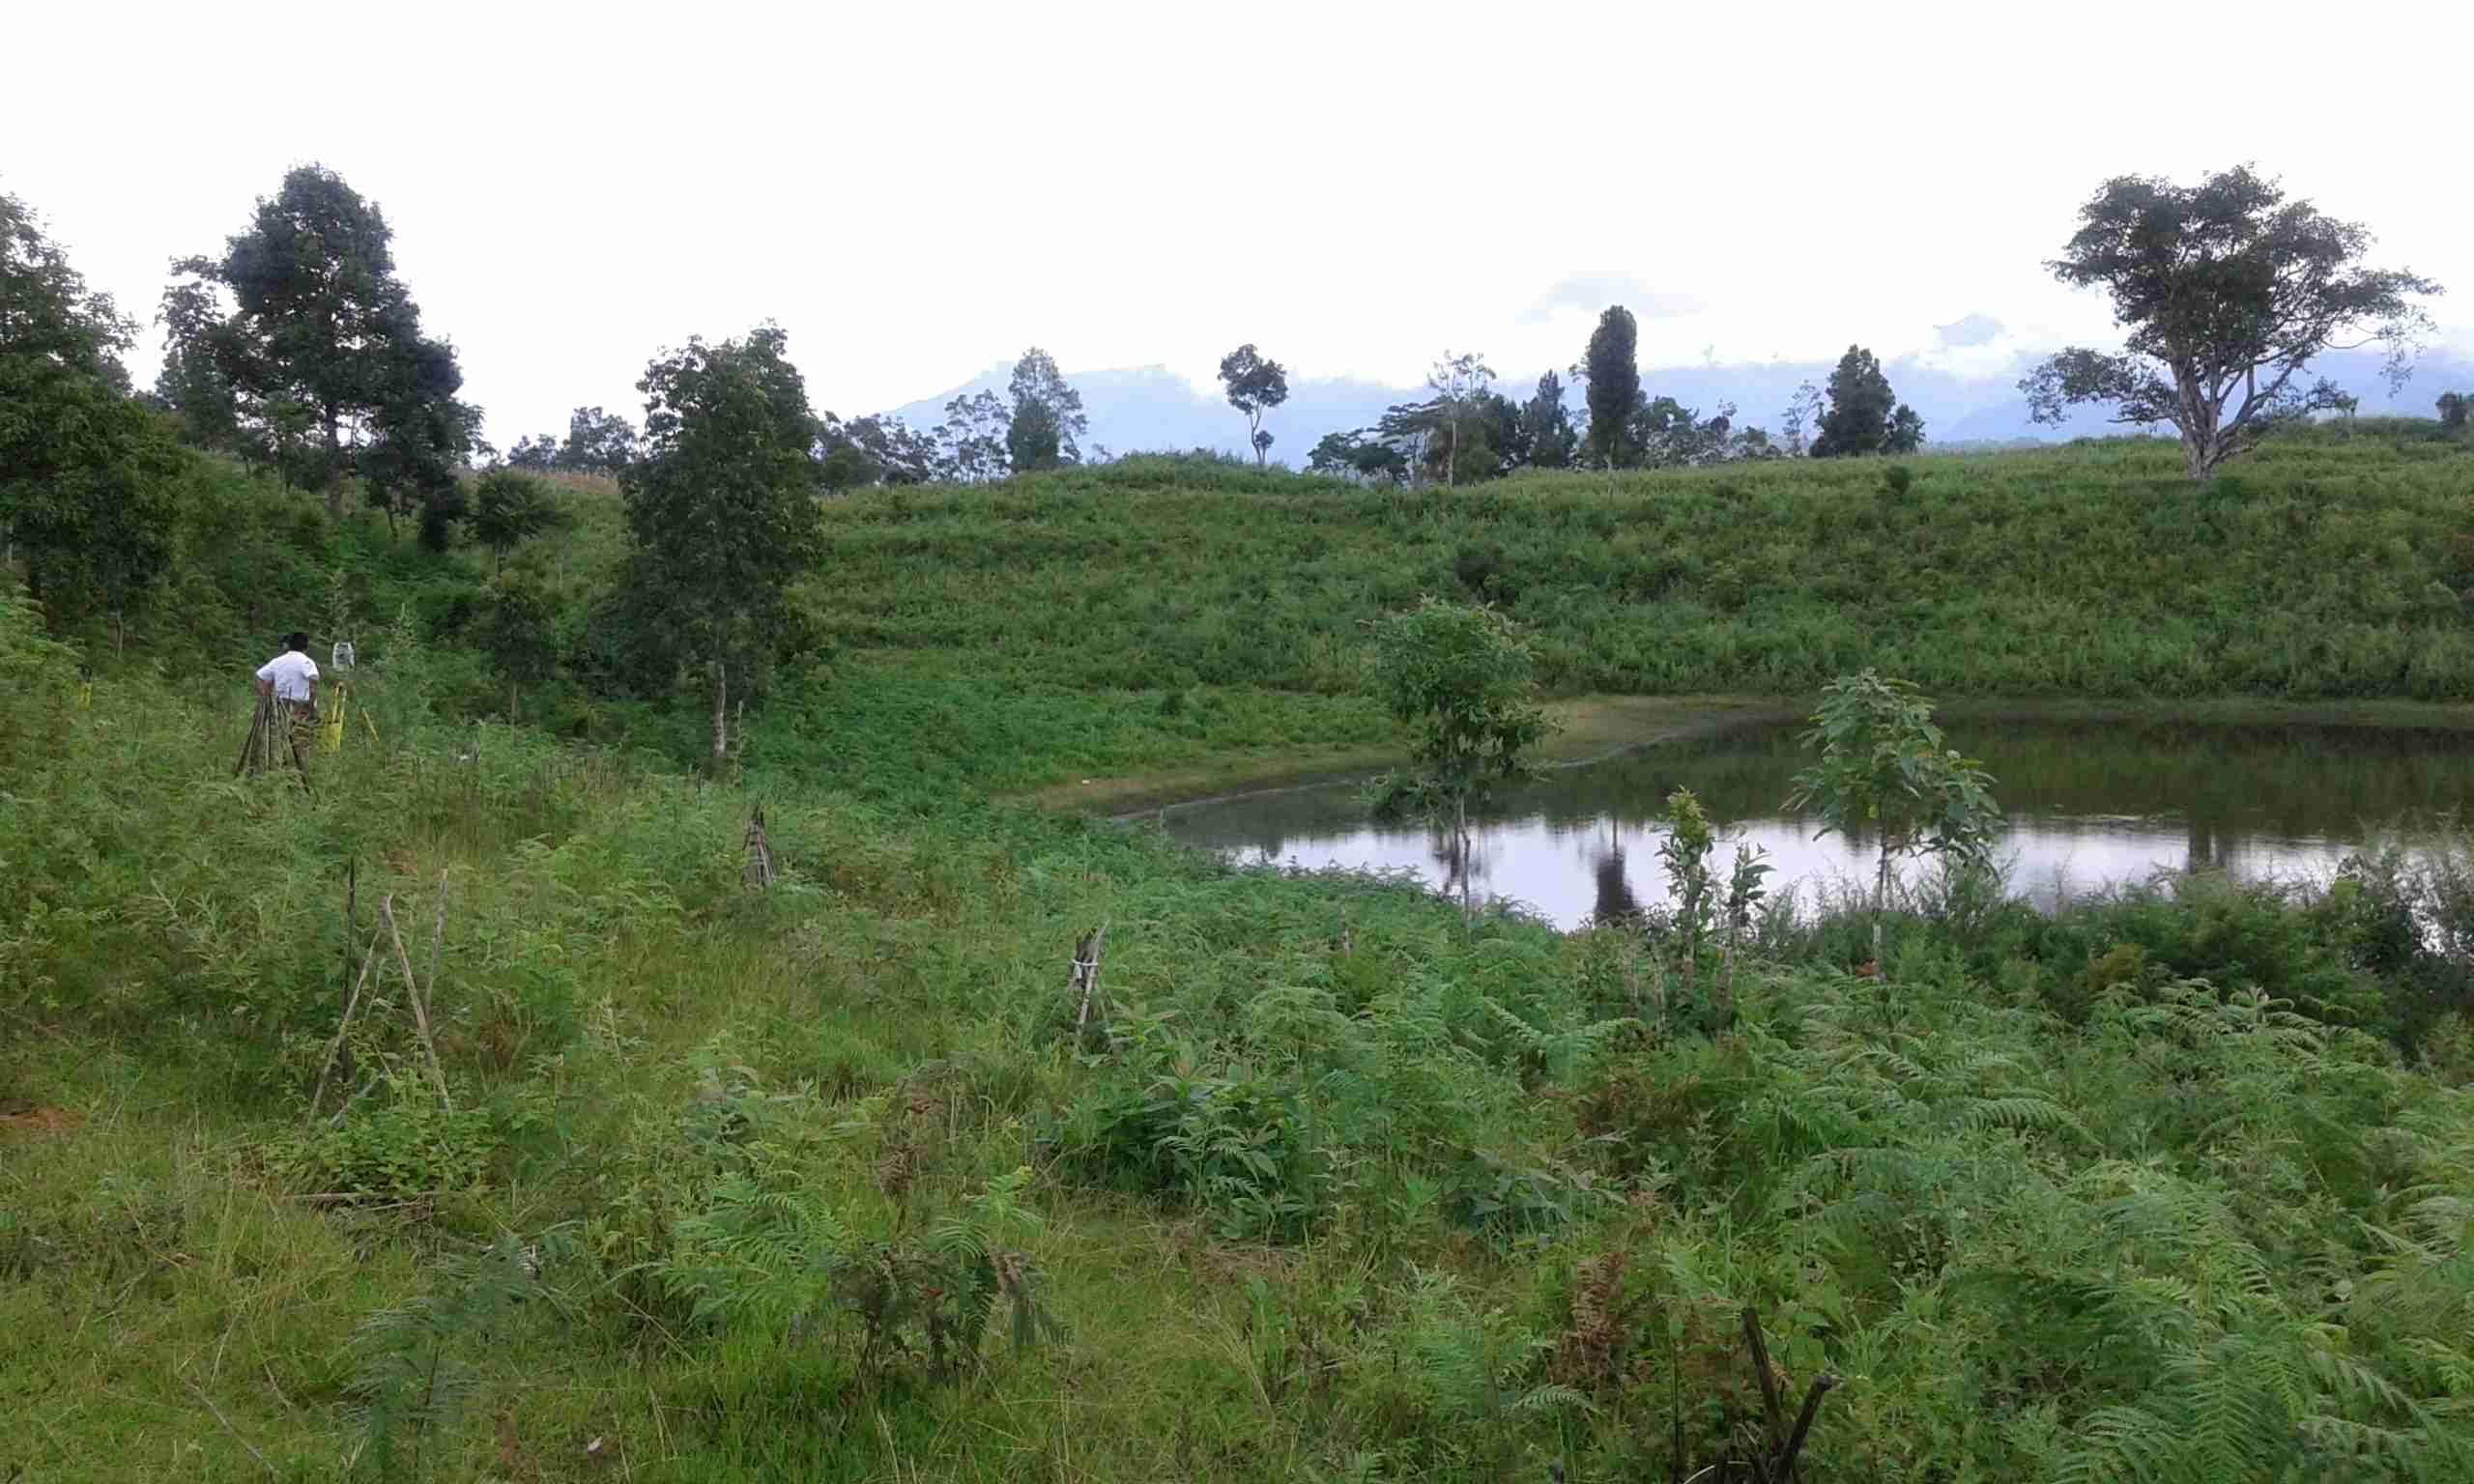 process of acquirng addtional 3 acres of land belonging to MoLHR_